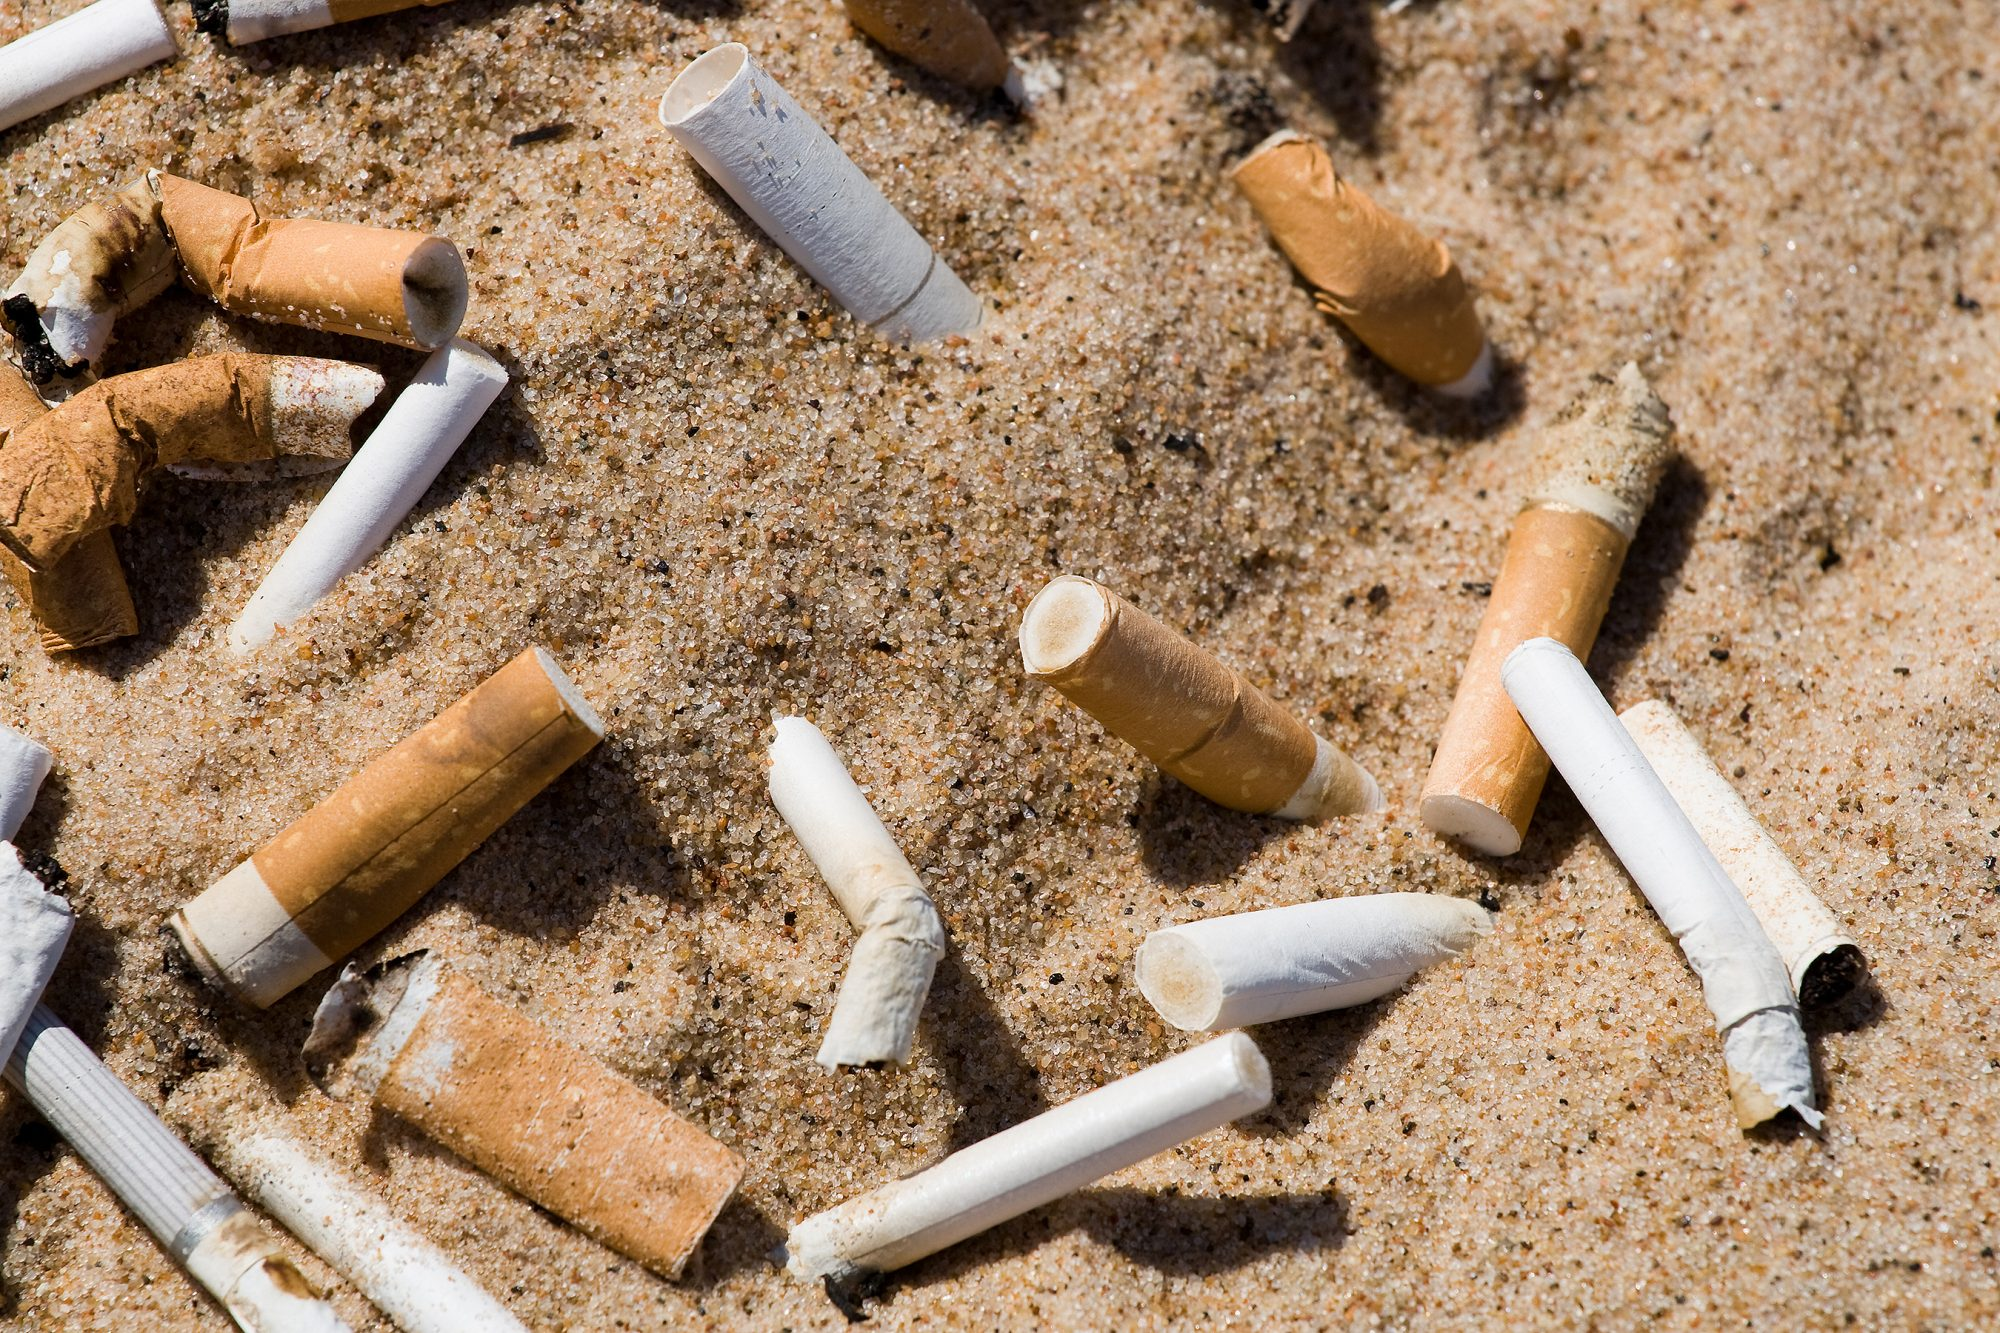 Cigarette butts pollution